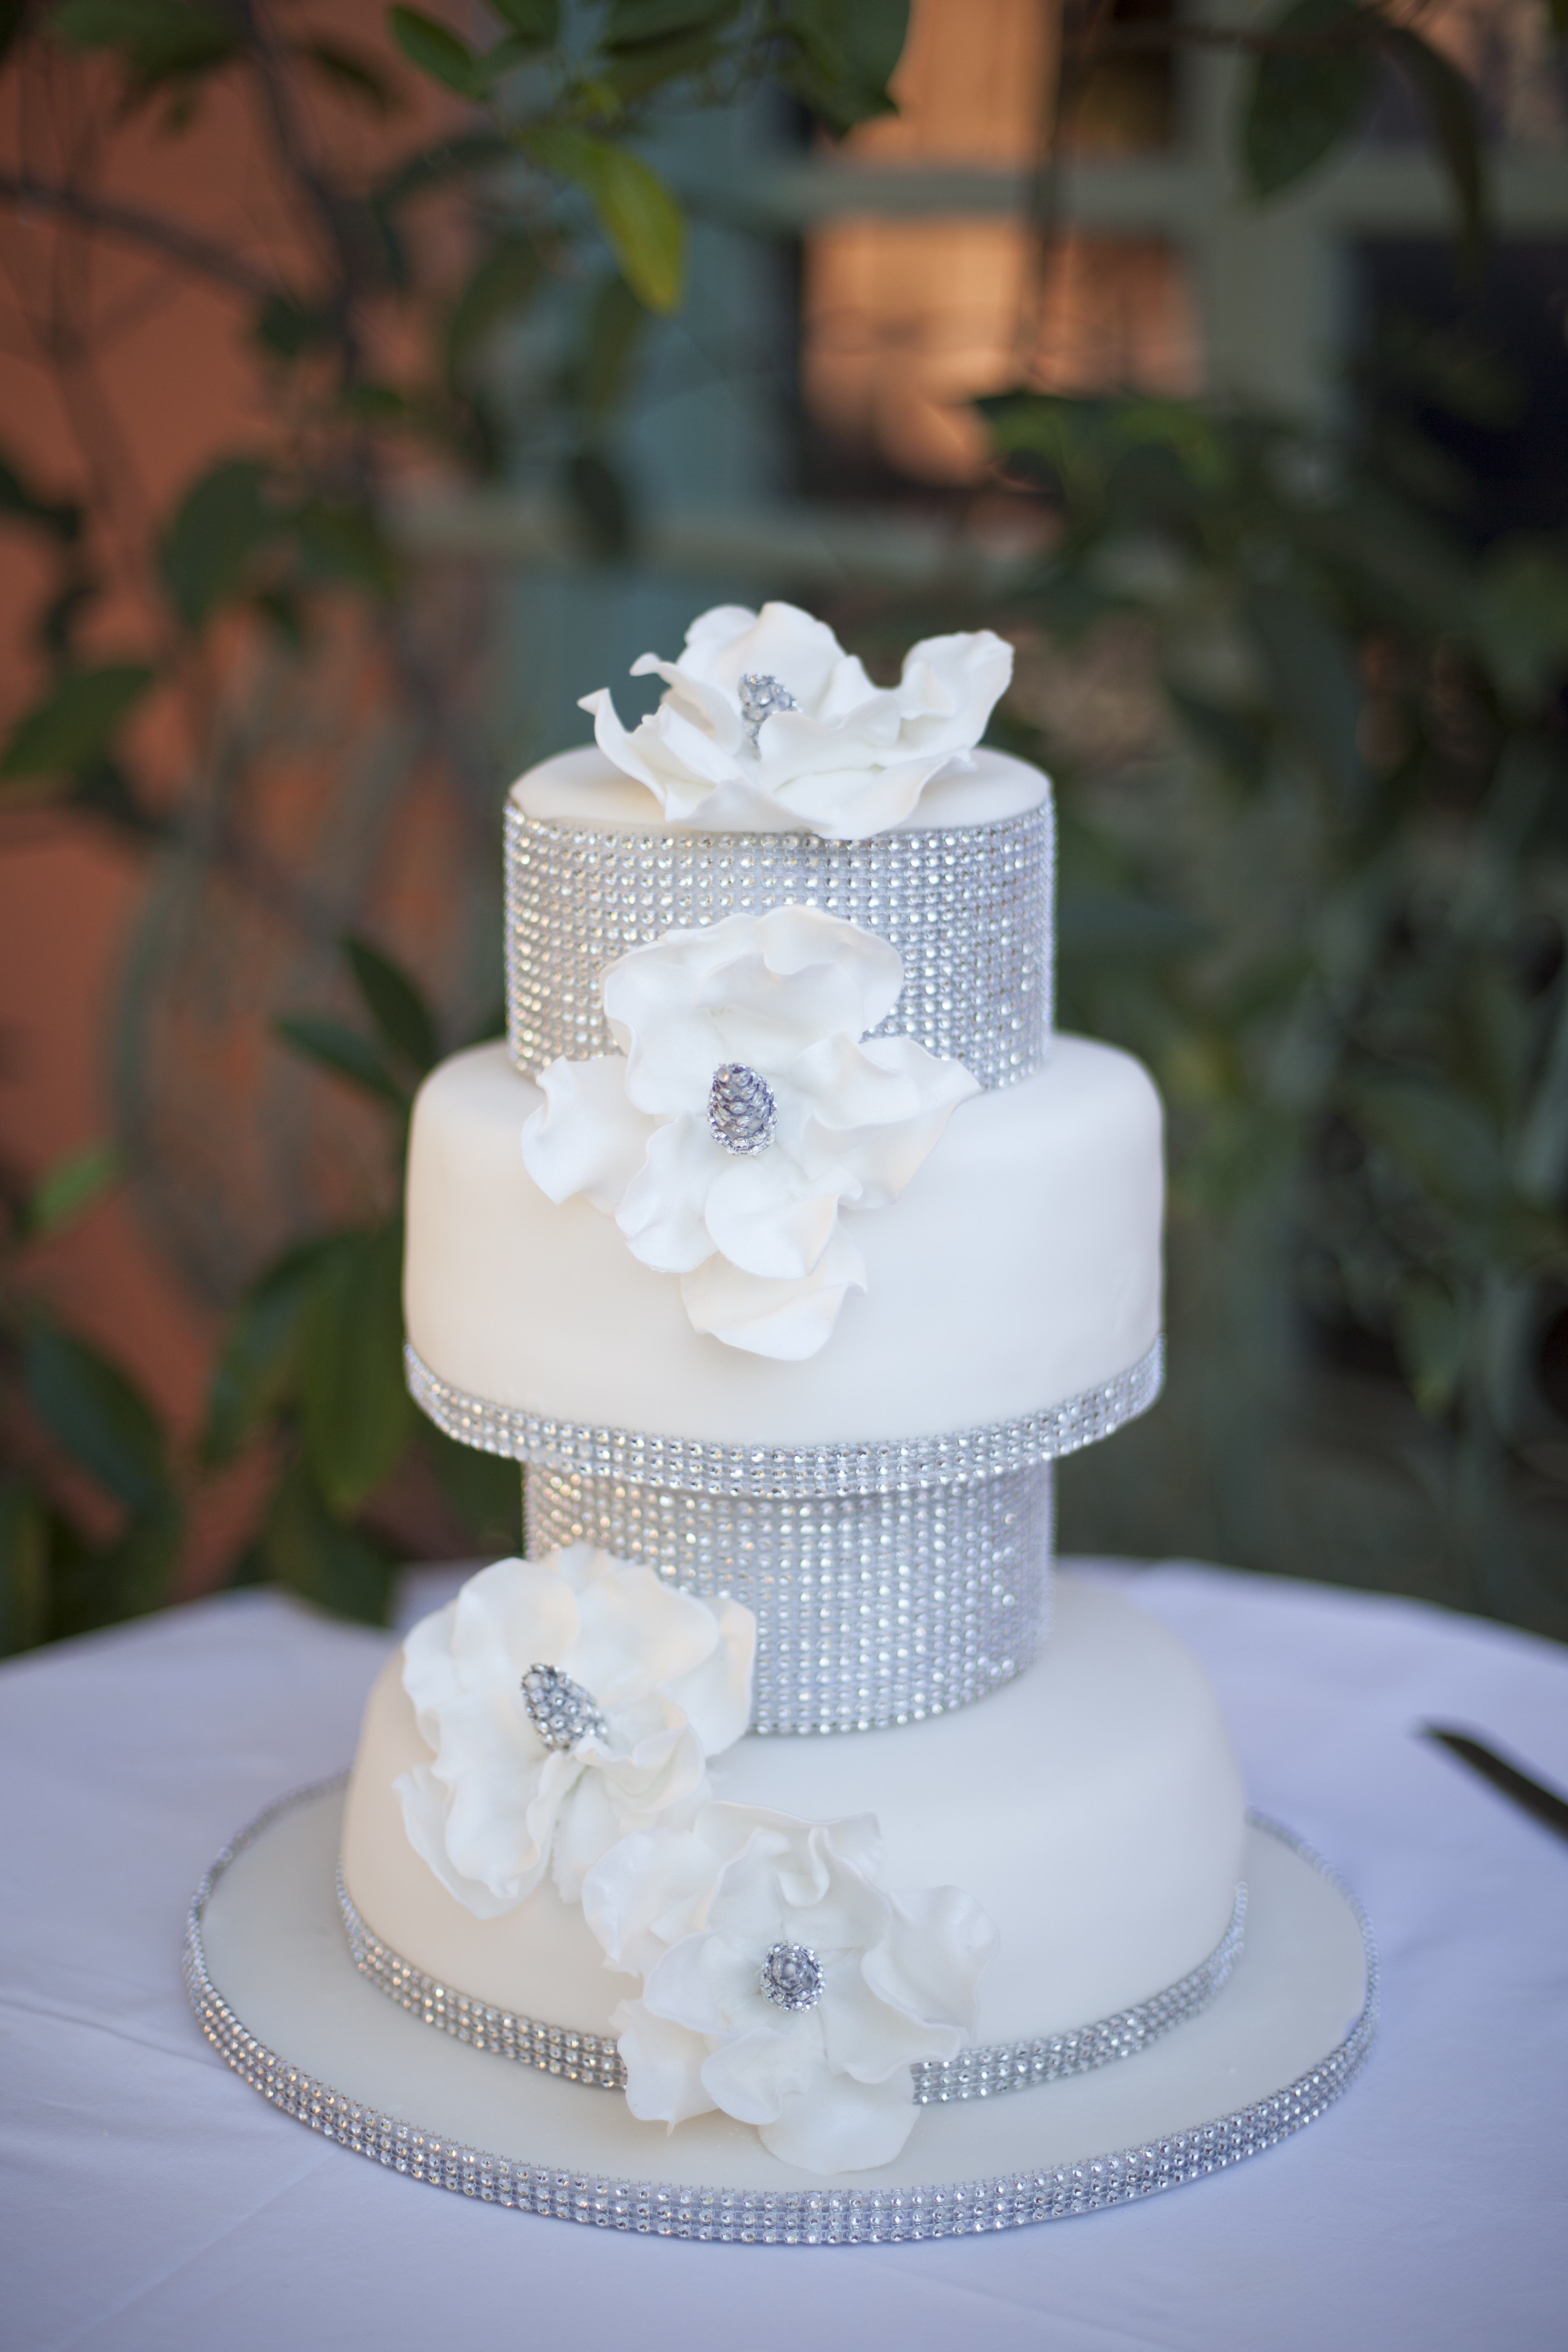 Wedding cakes in Northern Cyprus (16)